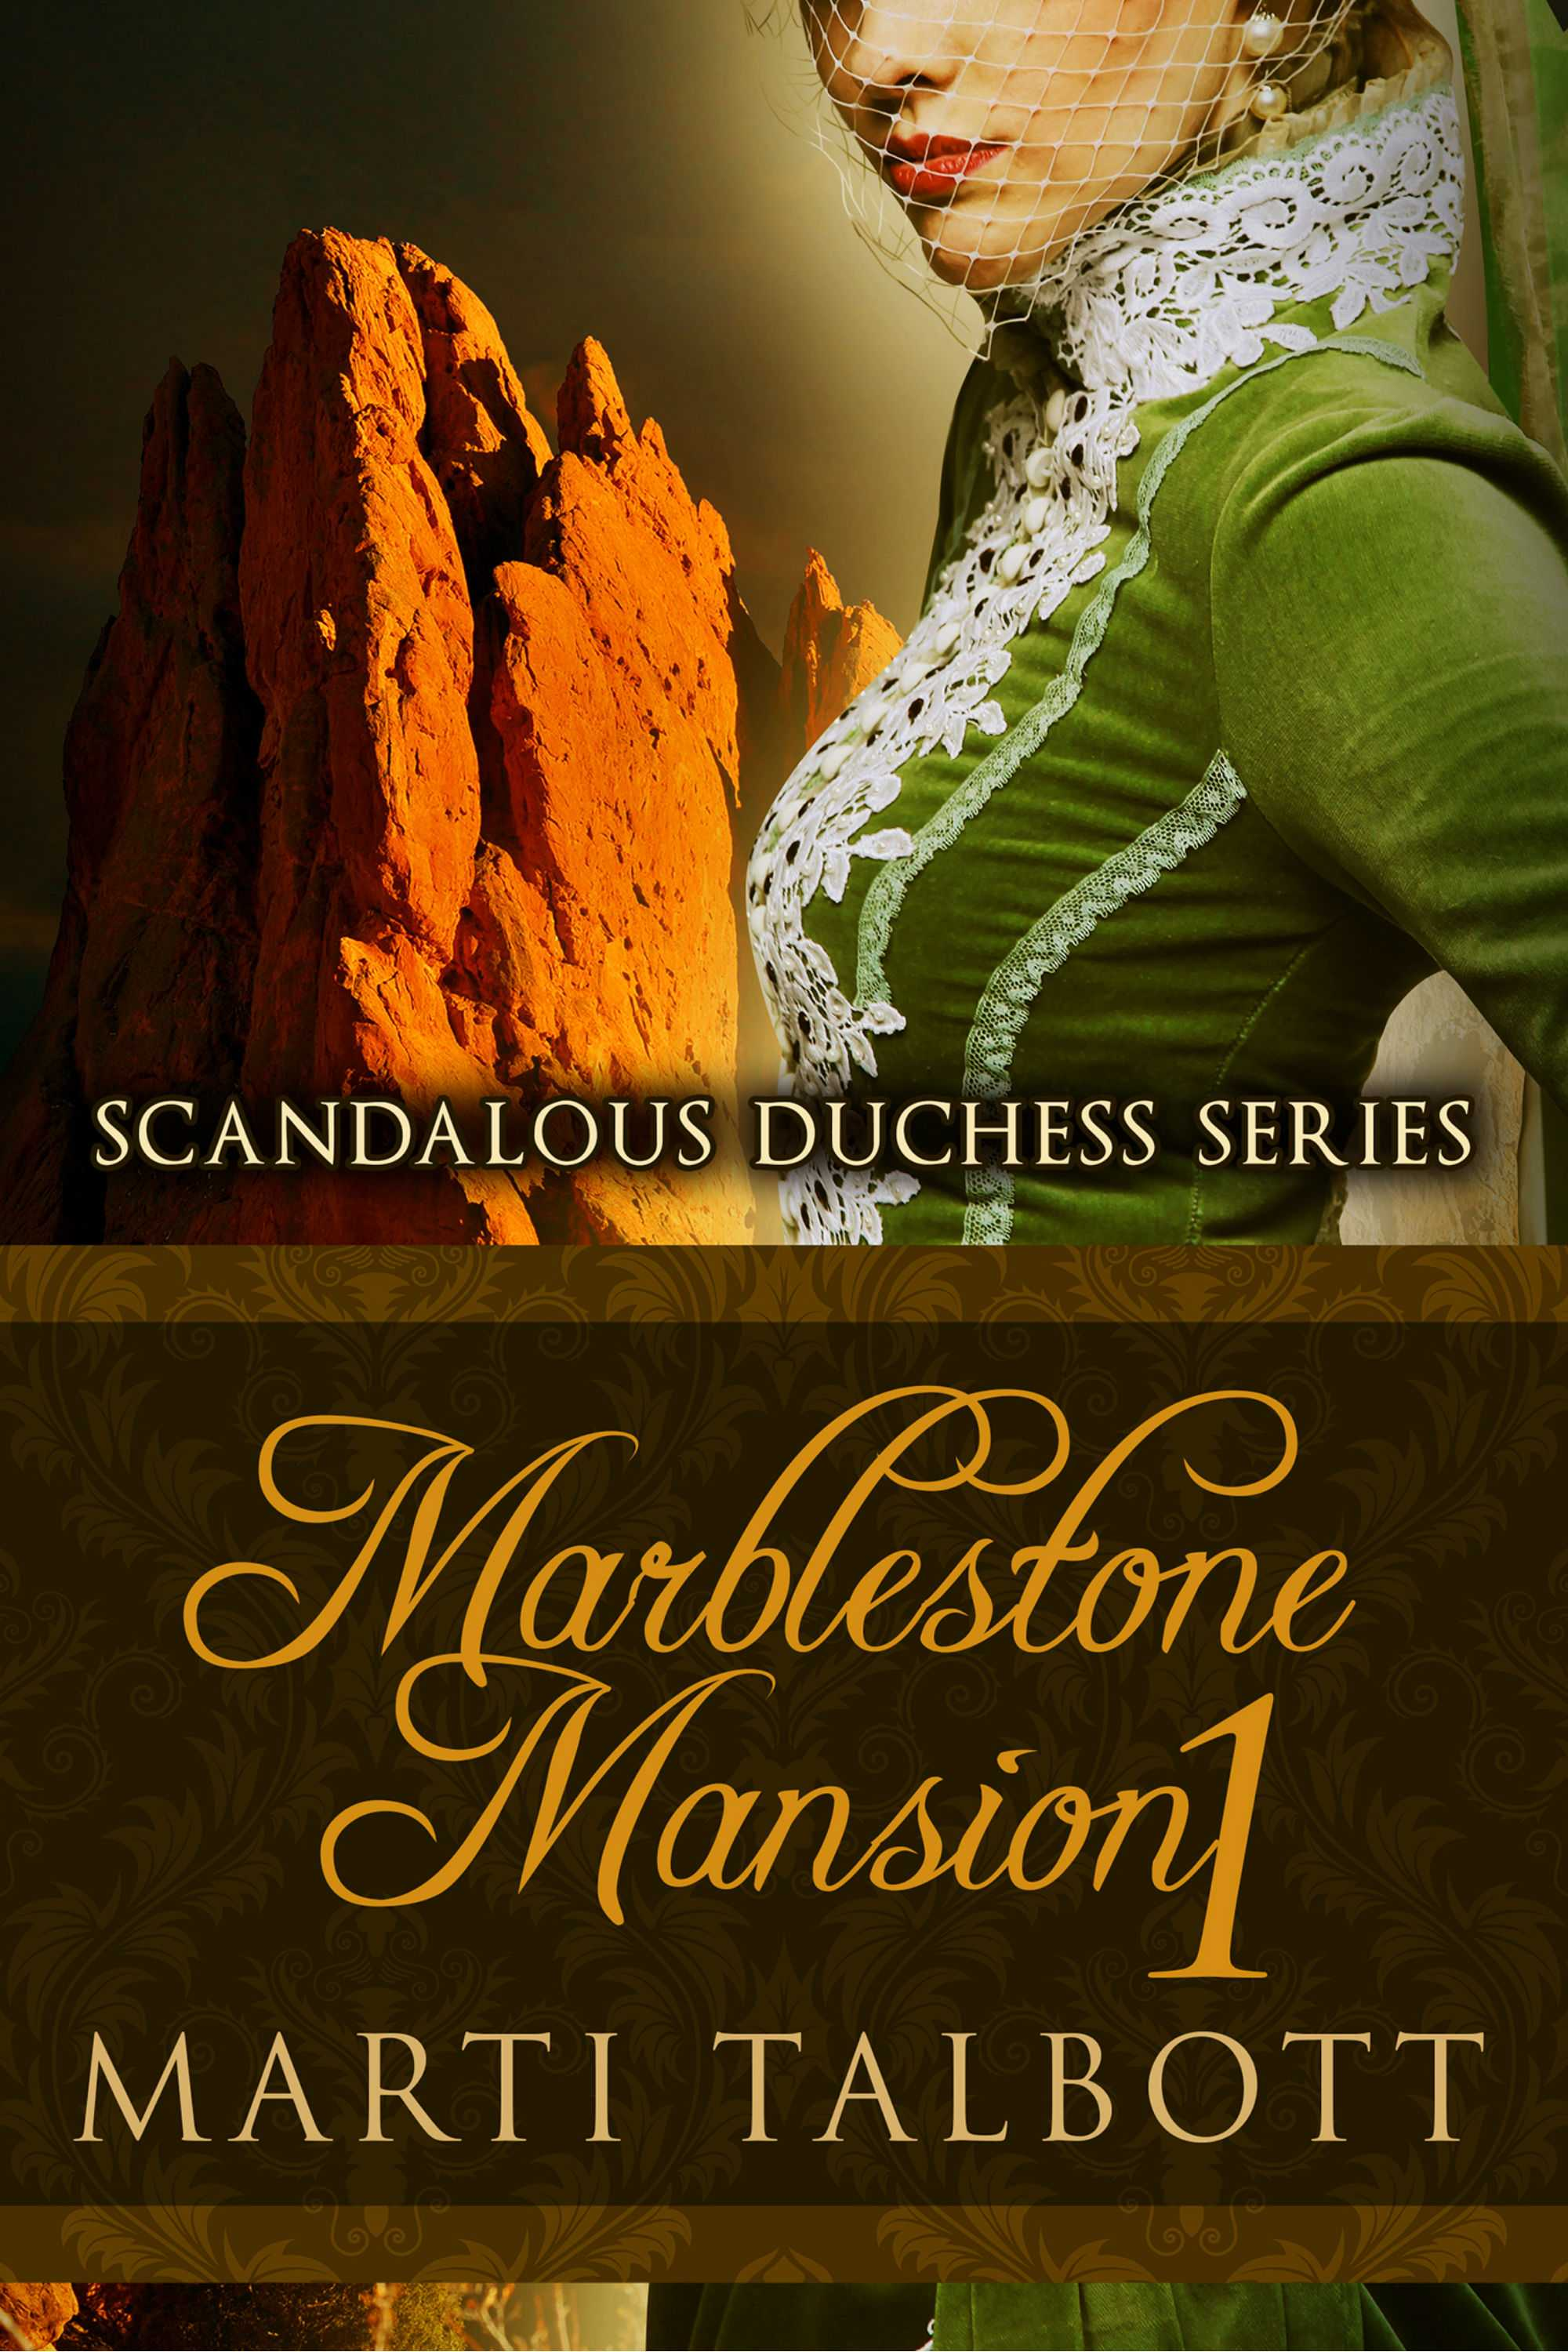 Marblestone Mansion (Scandalous Duchess Series) Book 1